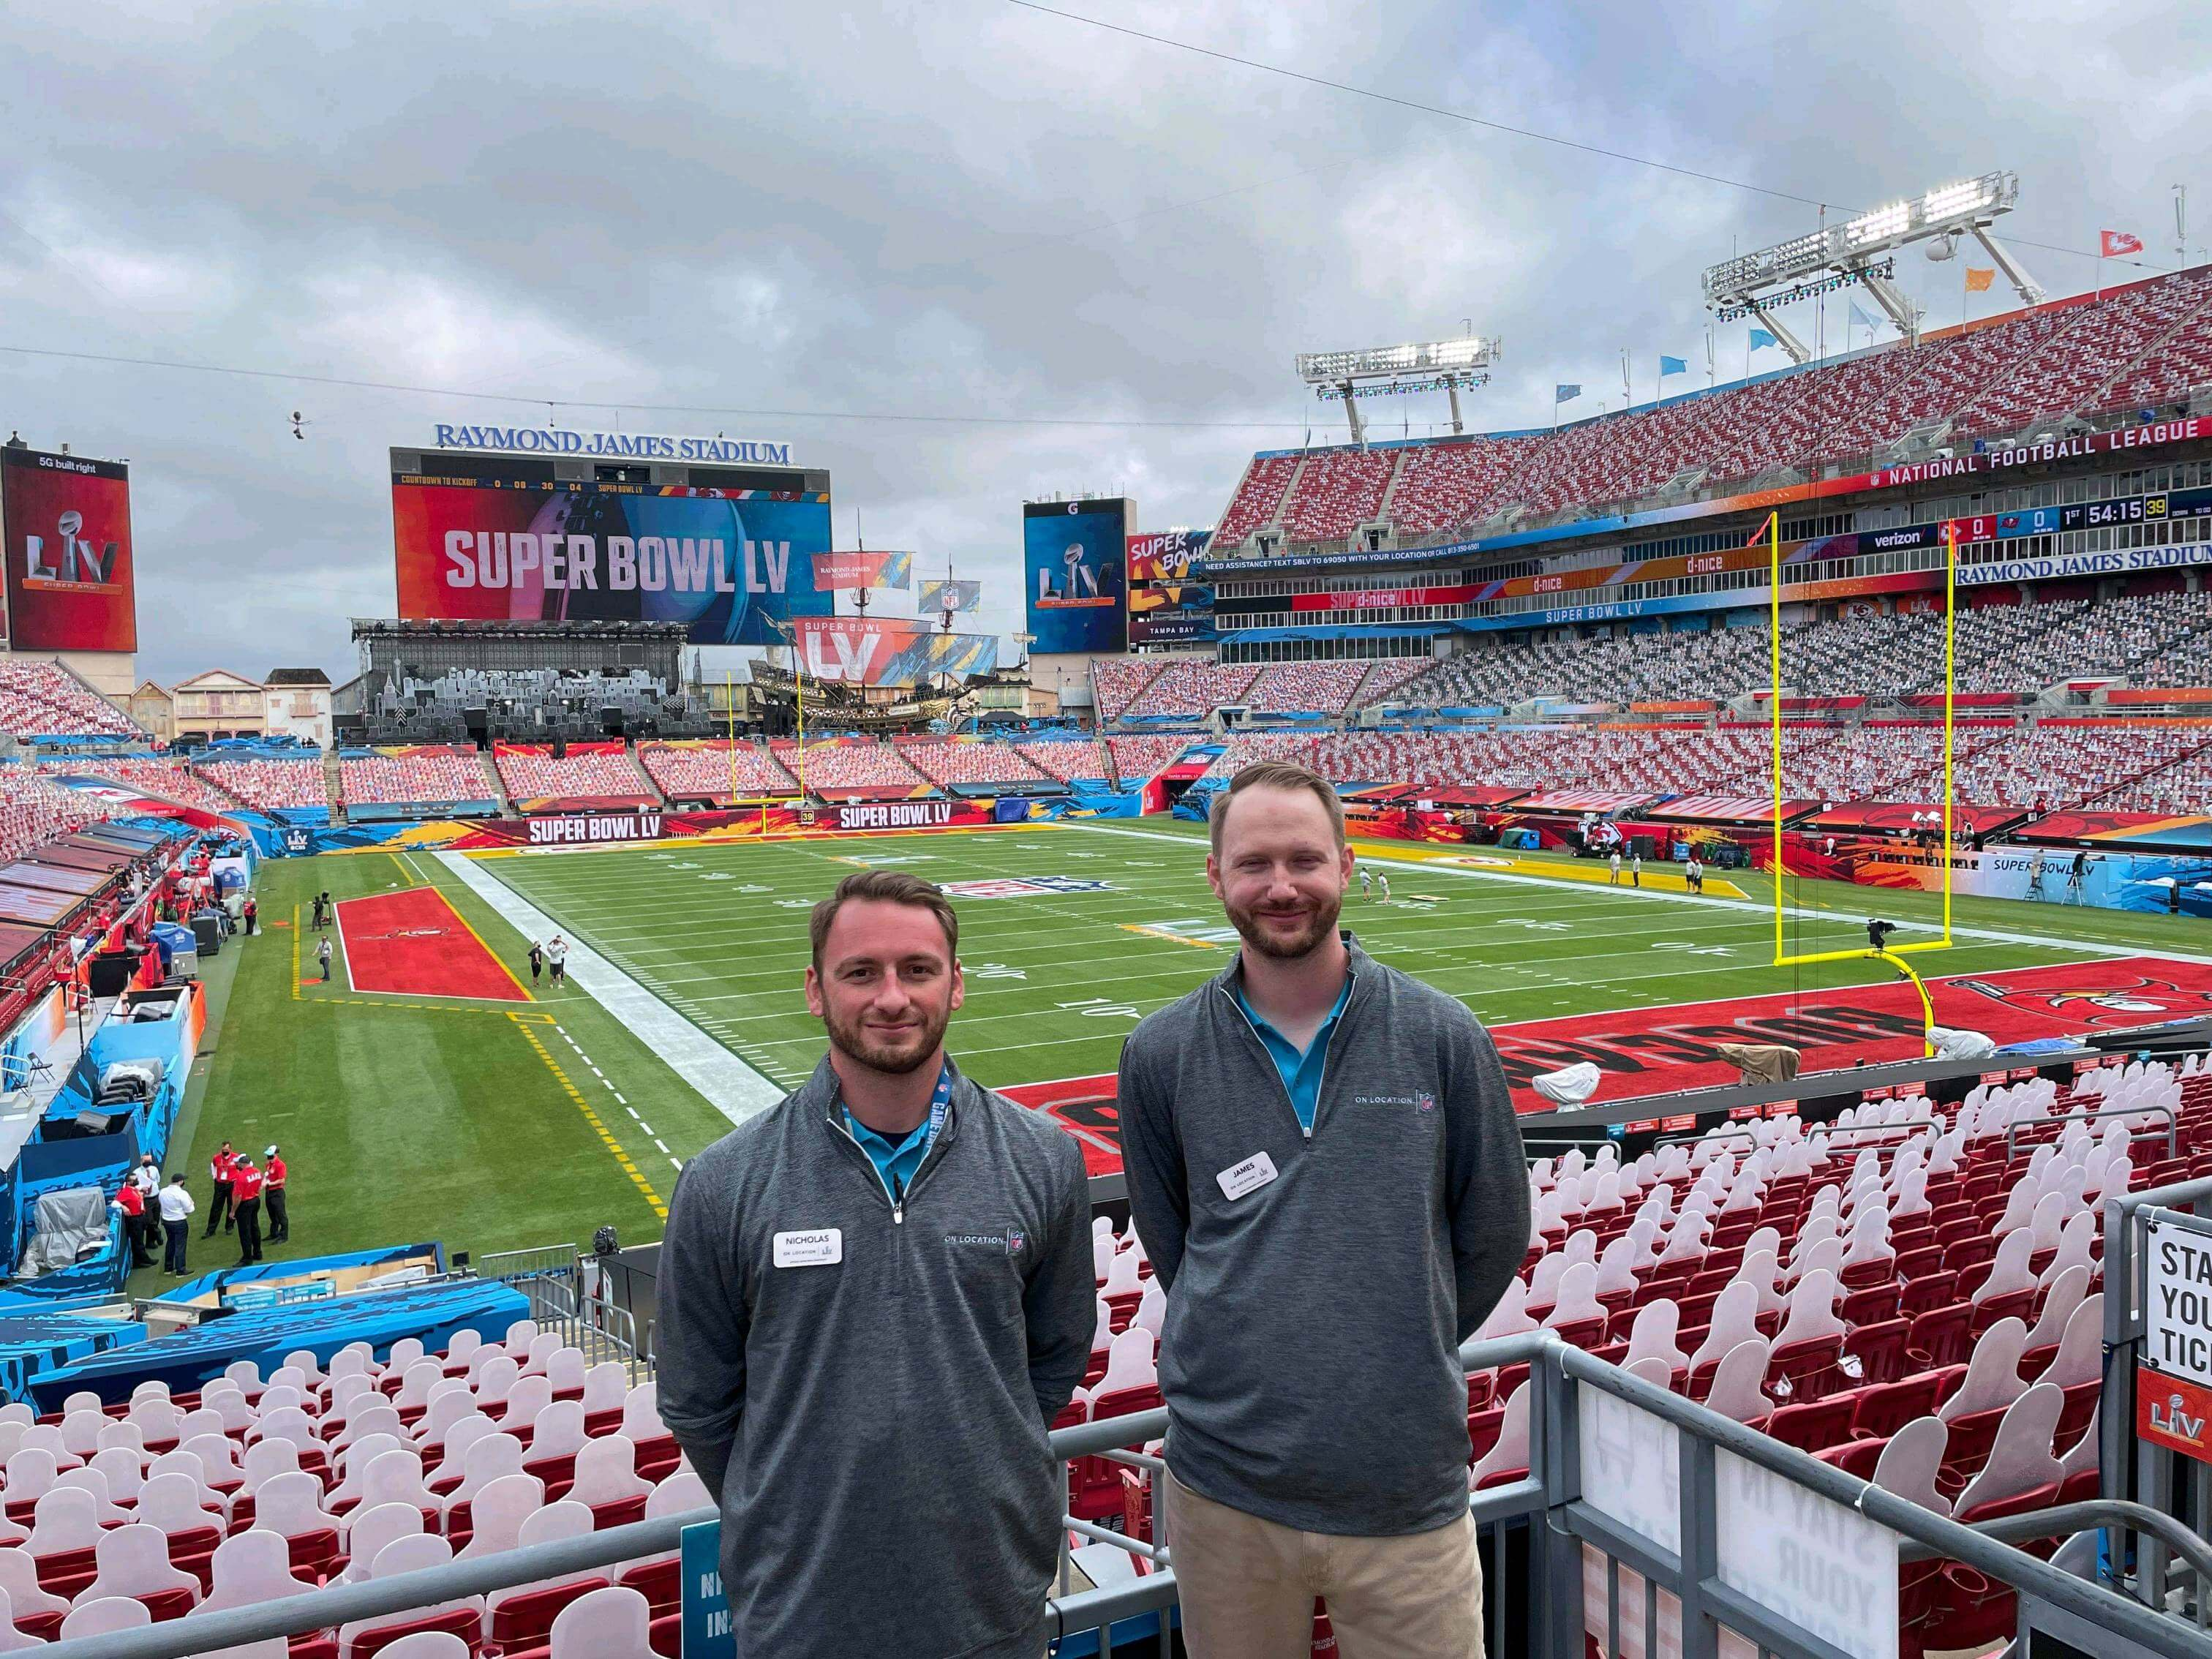 From left, are Nick Long and Dr. James Mattern, LHU sport studies assistant professor, at Super Bowl LV. The two 2014 LHU graduates volunteered at the big game as part of the Tampa Bay Super Bowl LV Host Committee.